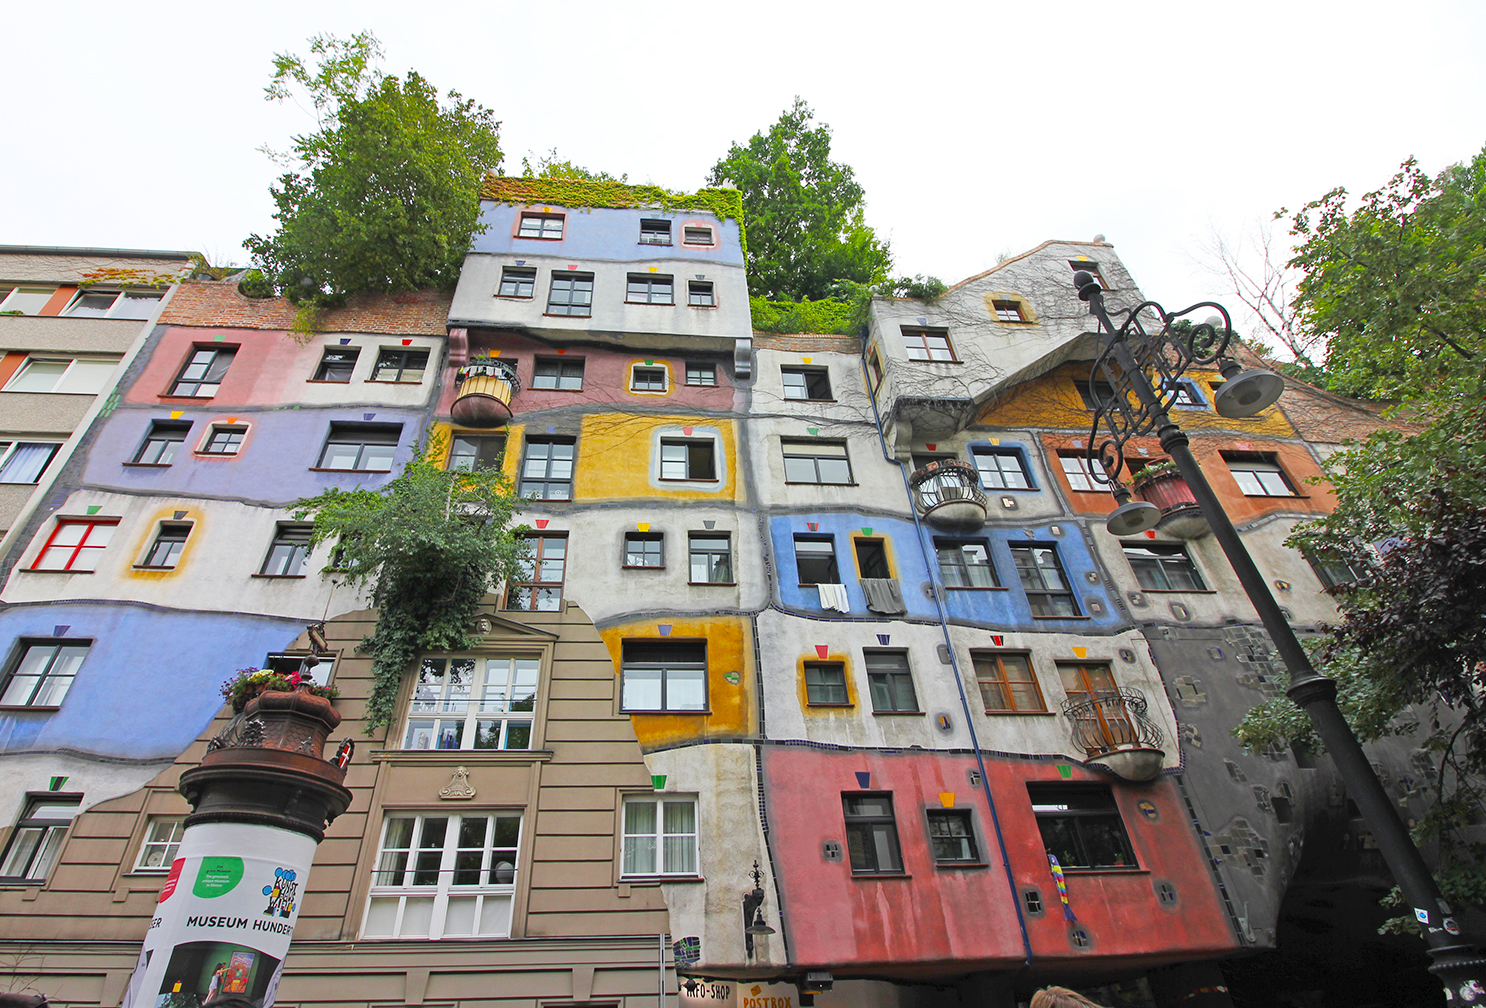 Hundertwasserhaus Vienna S Colourful Amp Quirky Housing Complex The Culture Map